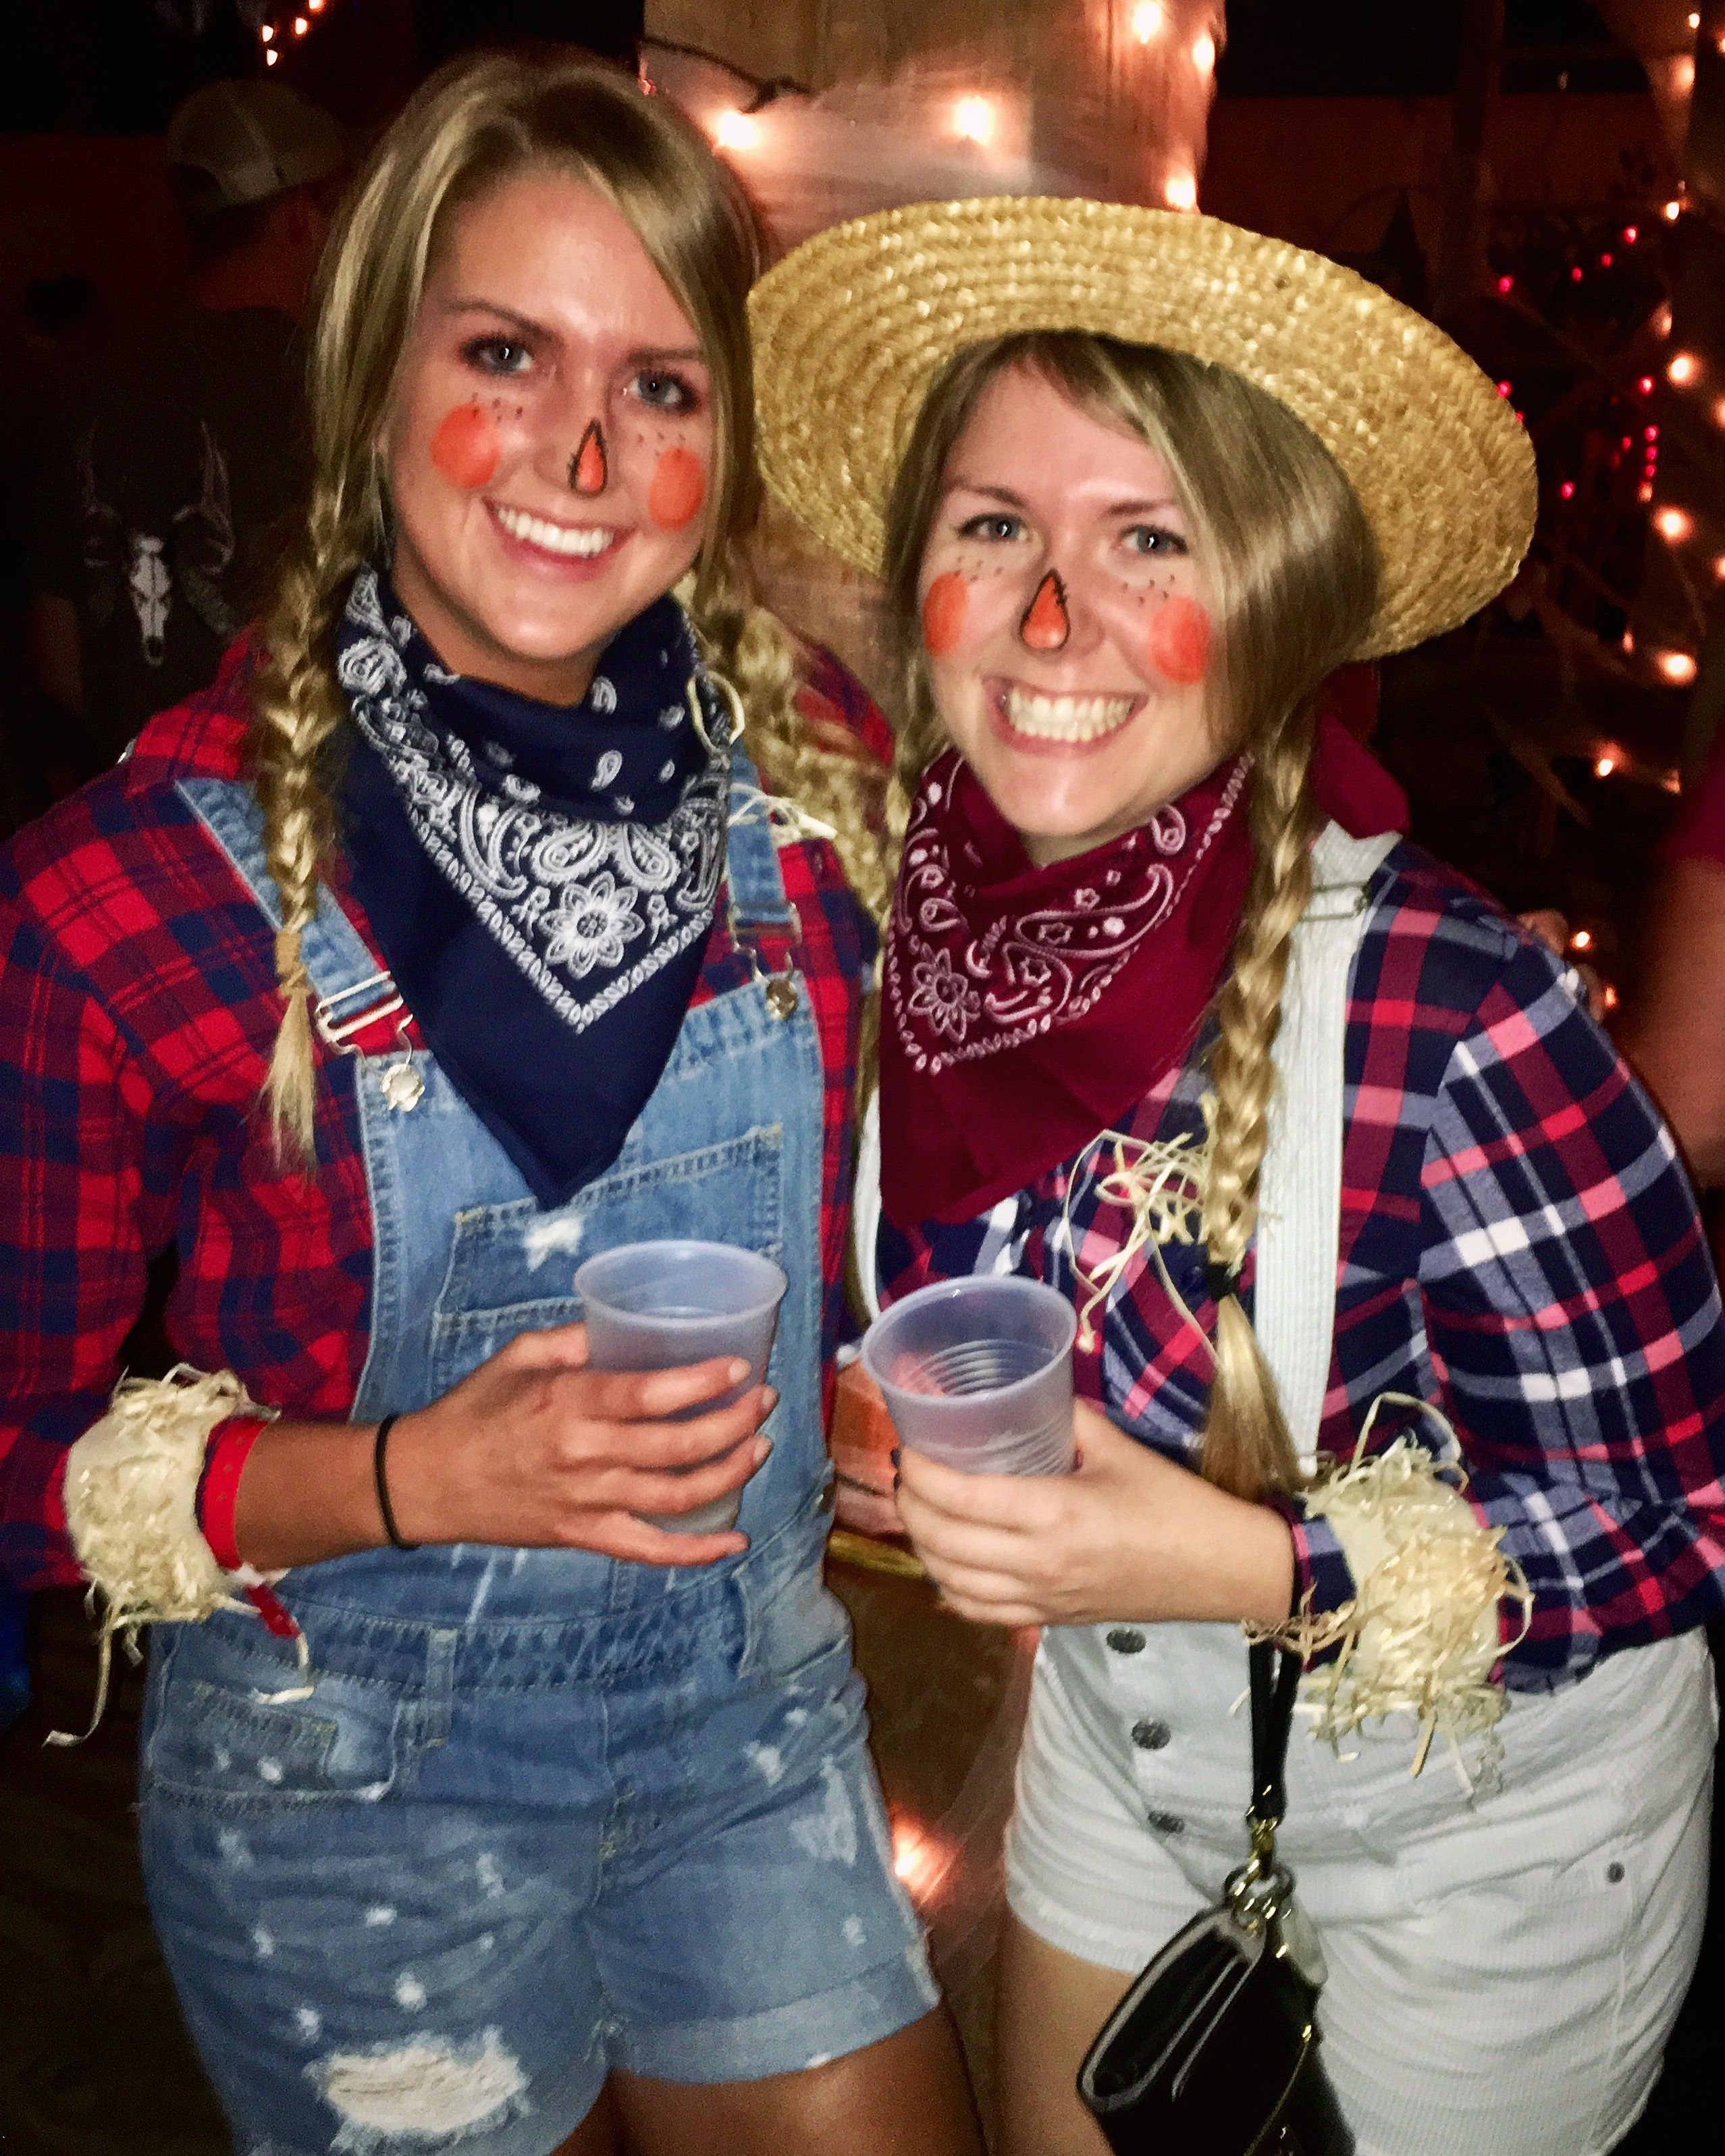 Flannel fashion makeup  Easy scarecrow costume straw hat nose and cheek makeup bandana